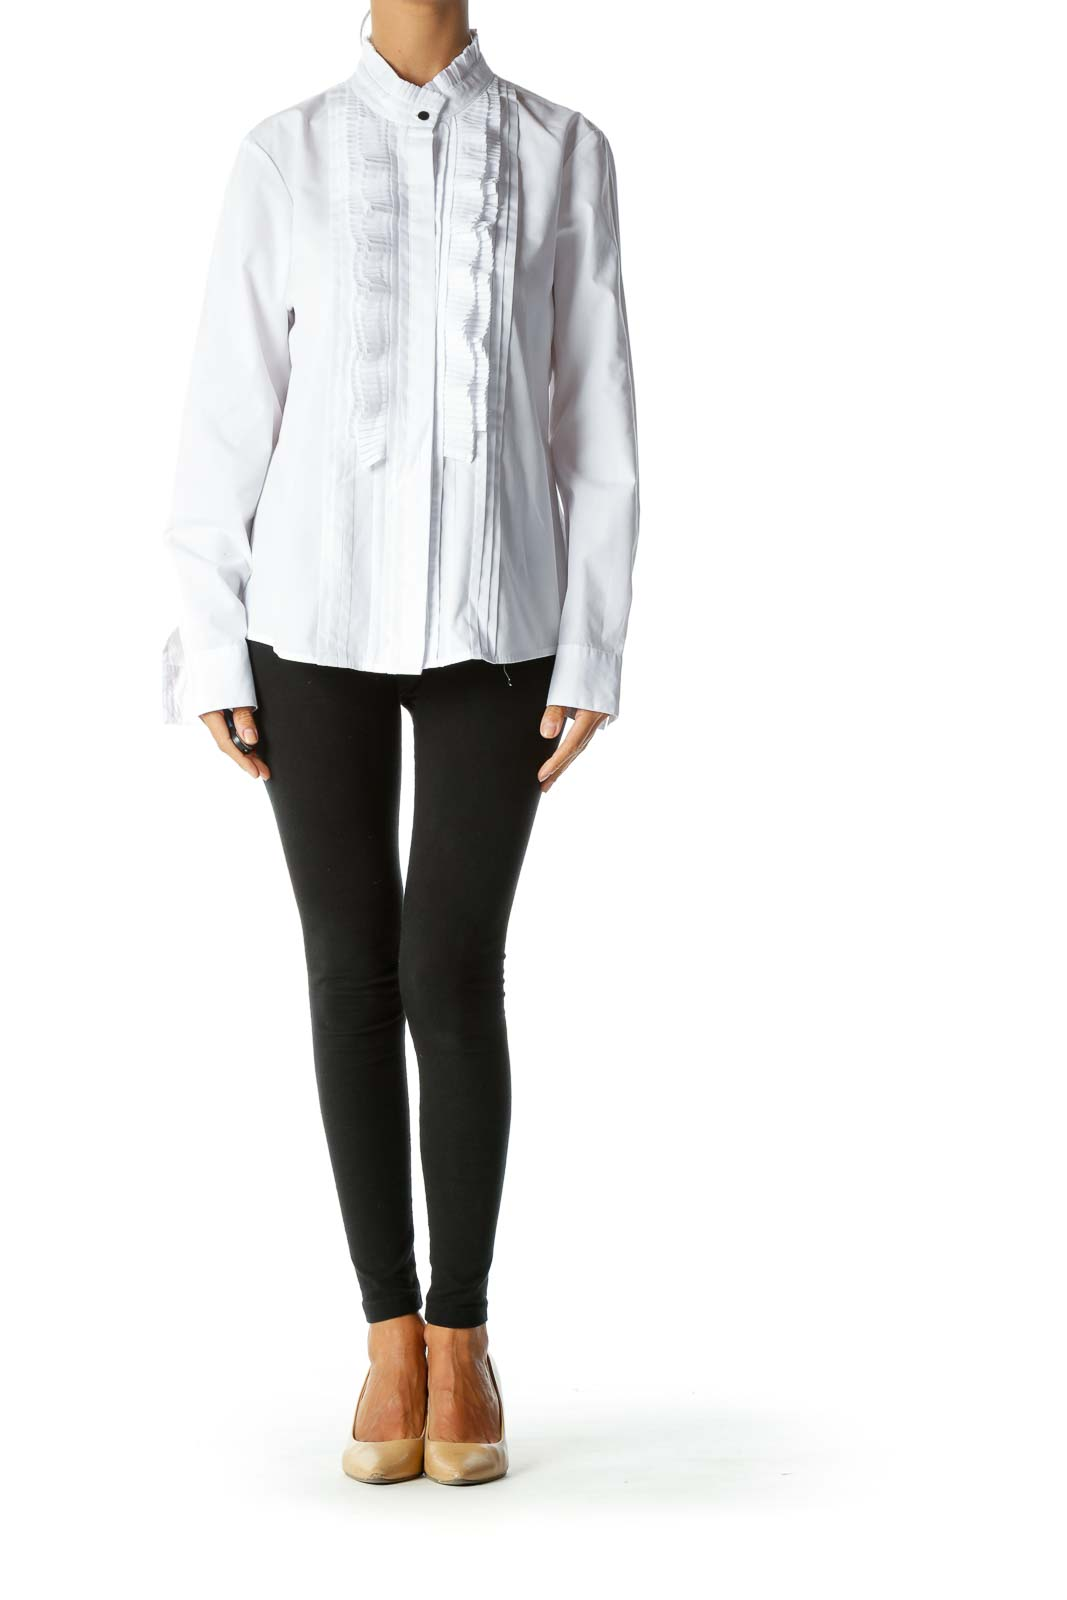 White Round Neck Pleated Trimming Details Shirt